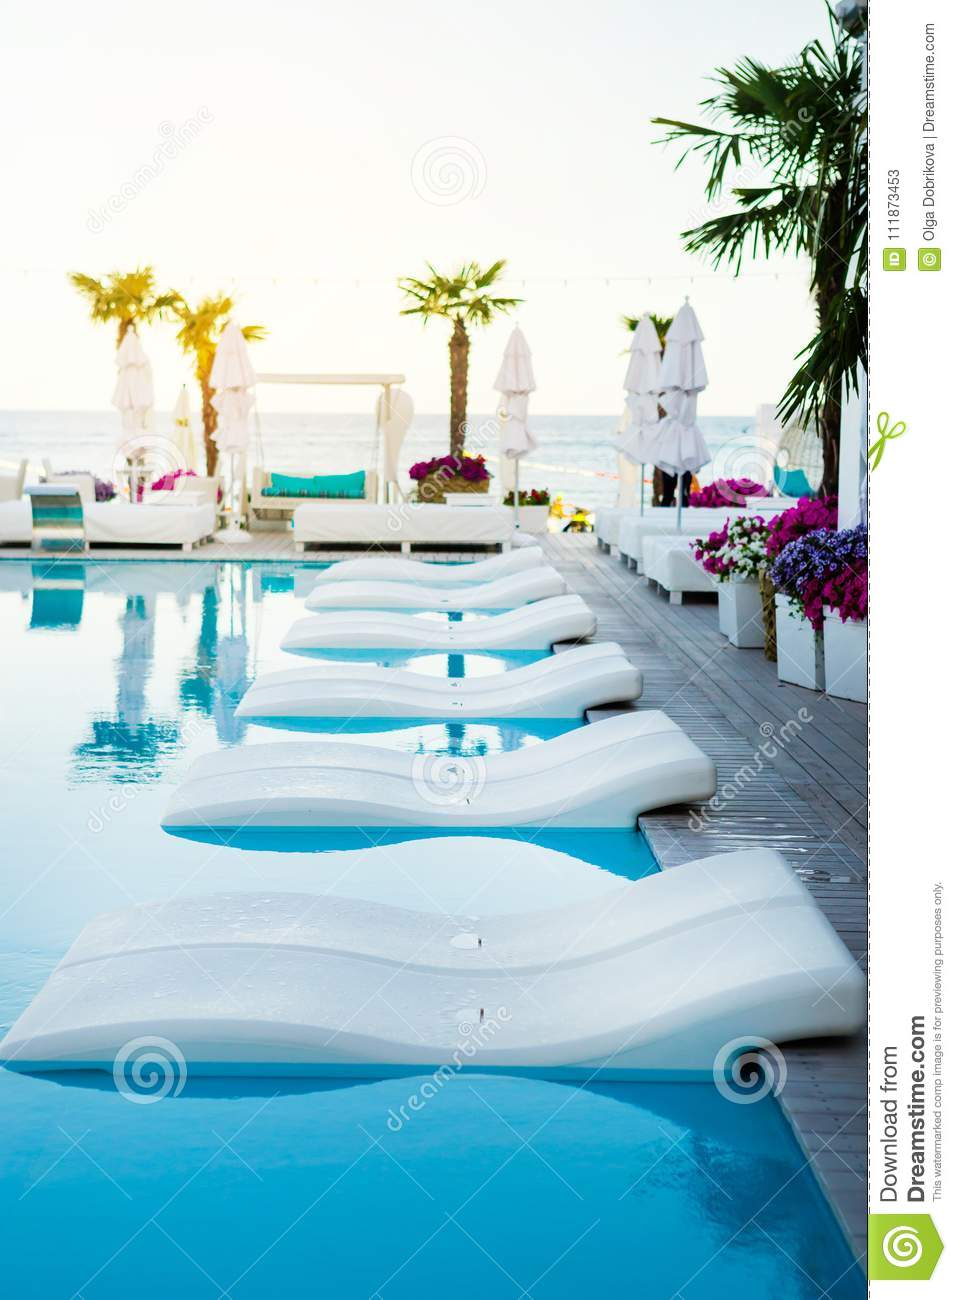 Pool With Palm Tree White Umbrella And Chaise Longue Stock Image